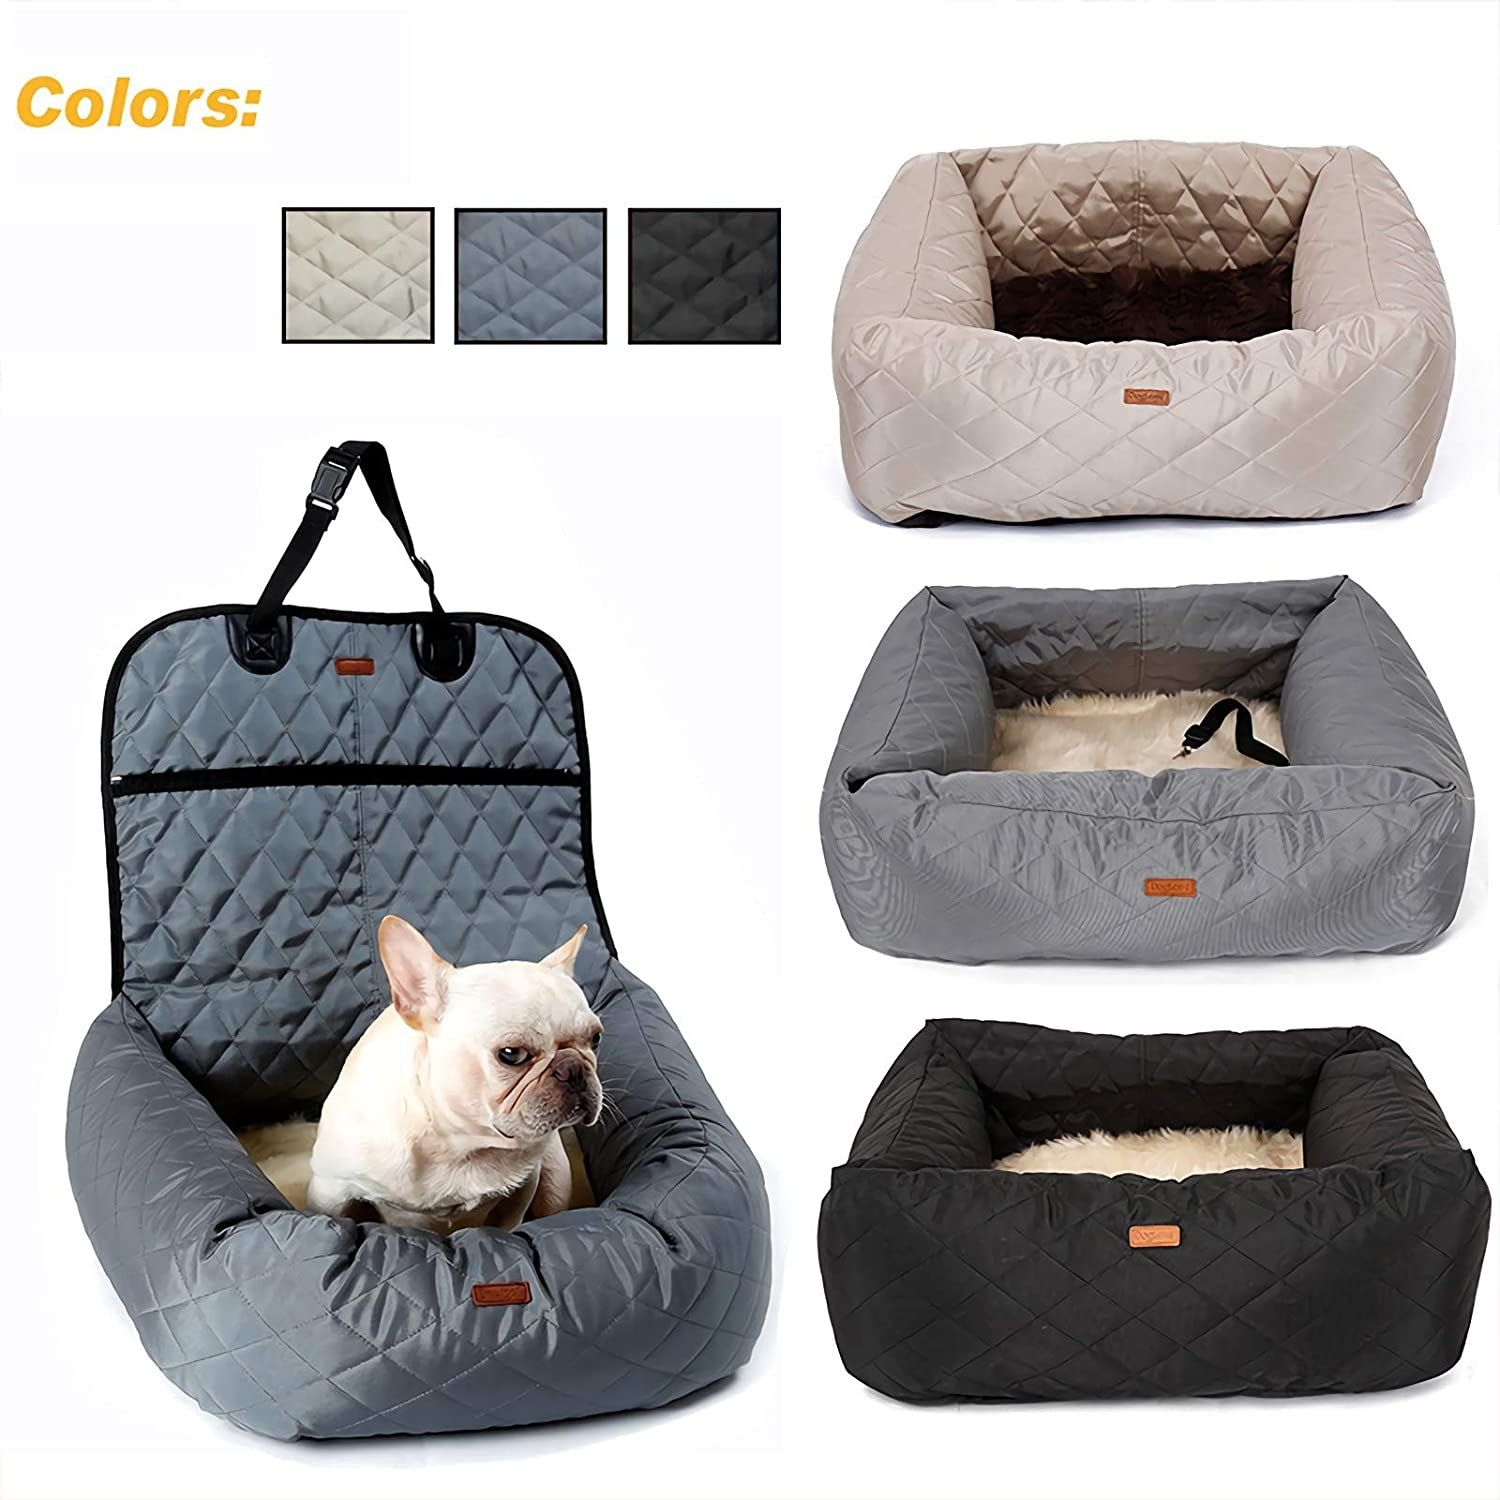 Pet Car Booster Seat Pet Dog Car Supplies Waterproof Pet Car Seat Cover Pet Car Carriers Travelling Seat Predector Thicken pet pad Removable and Washable Warm pet nest